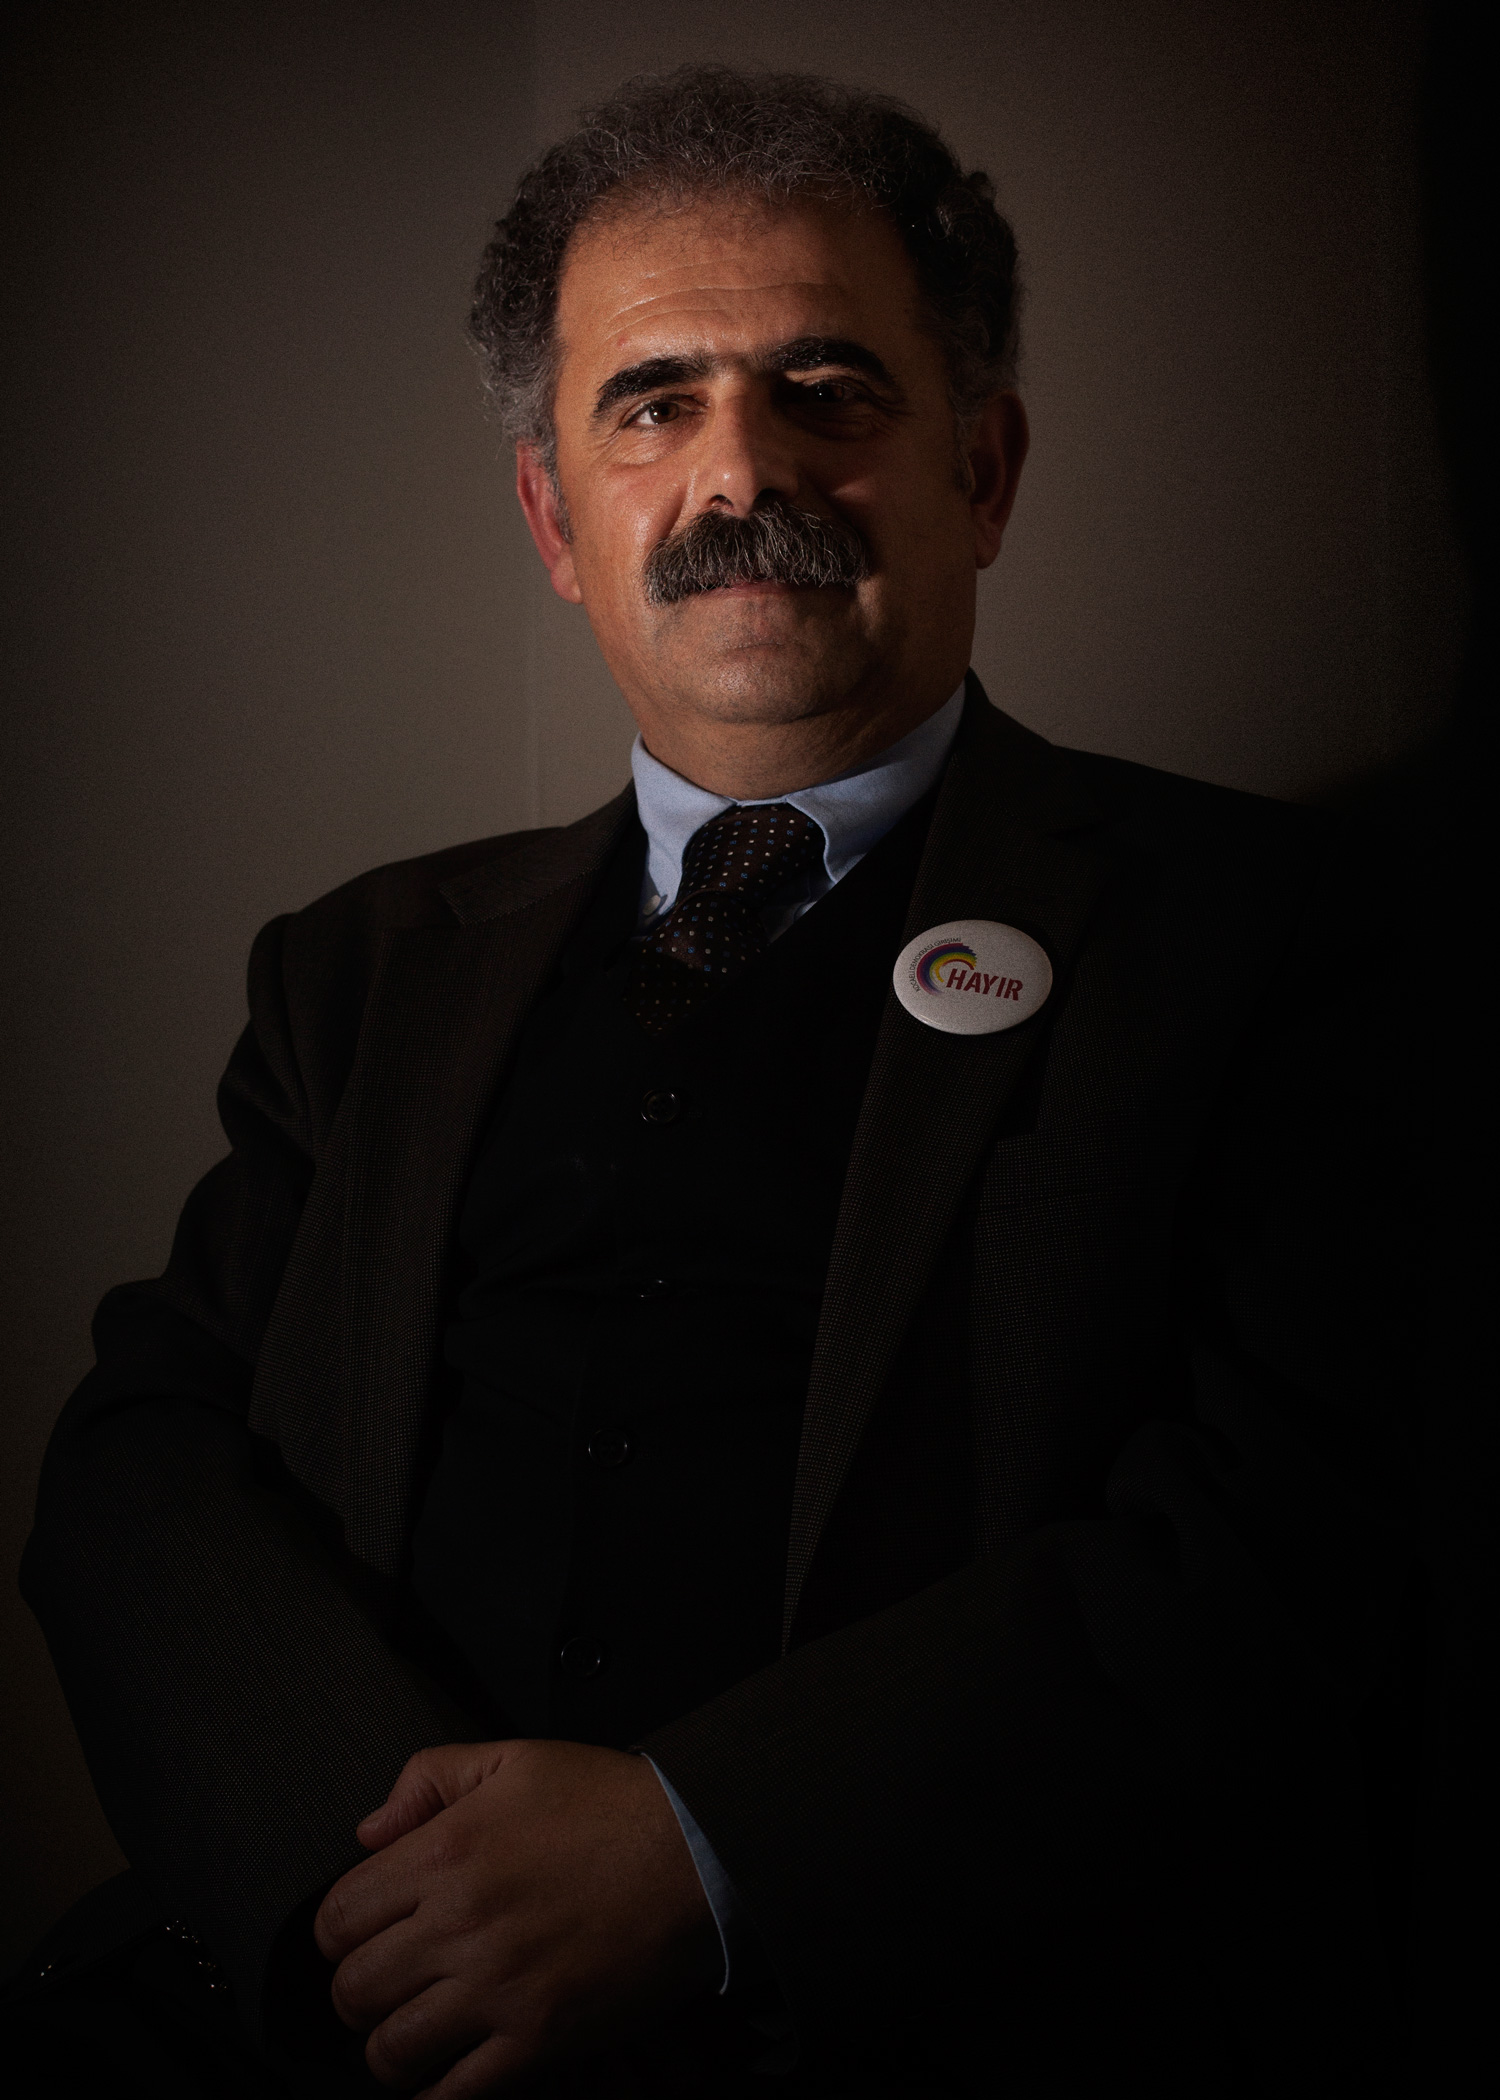 Onur Hamzaoglu was one of those dismissed from his university position as a professor after signing a petition calling for peace.